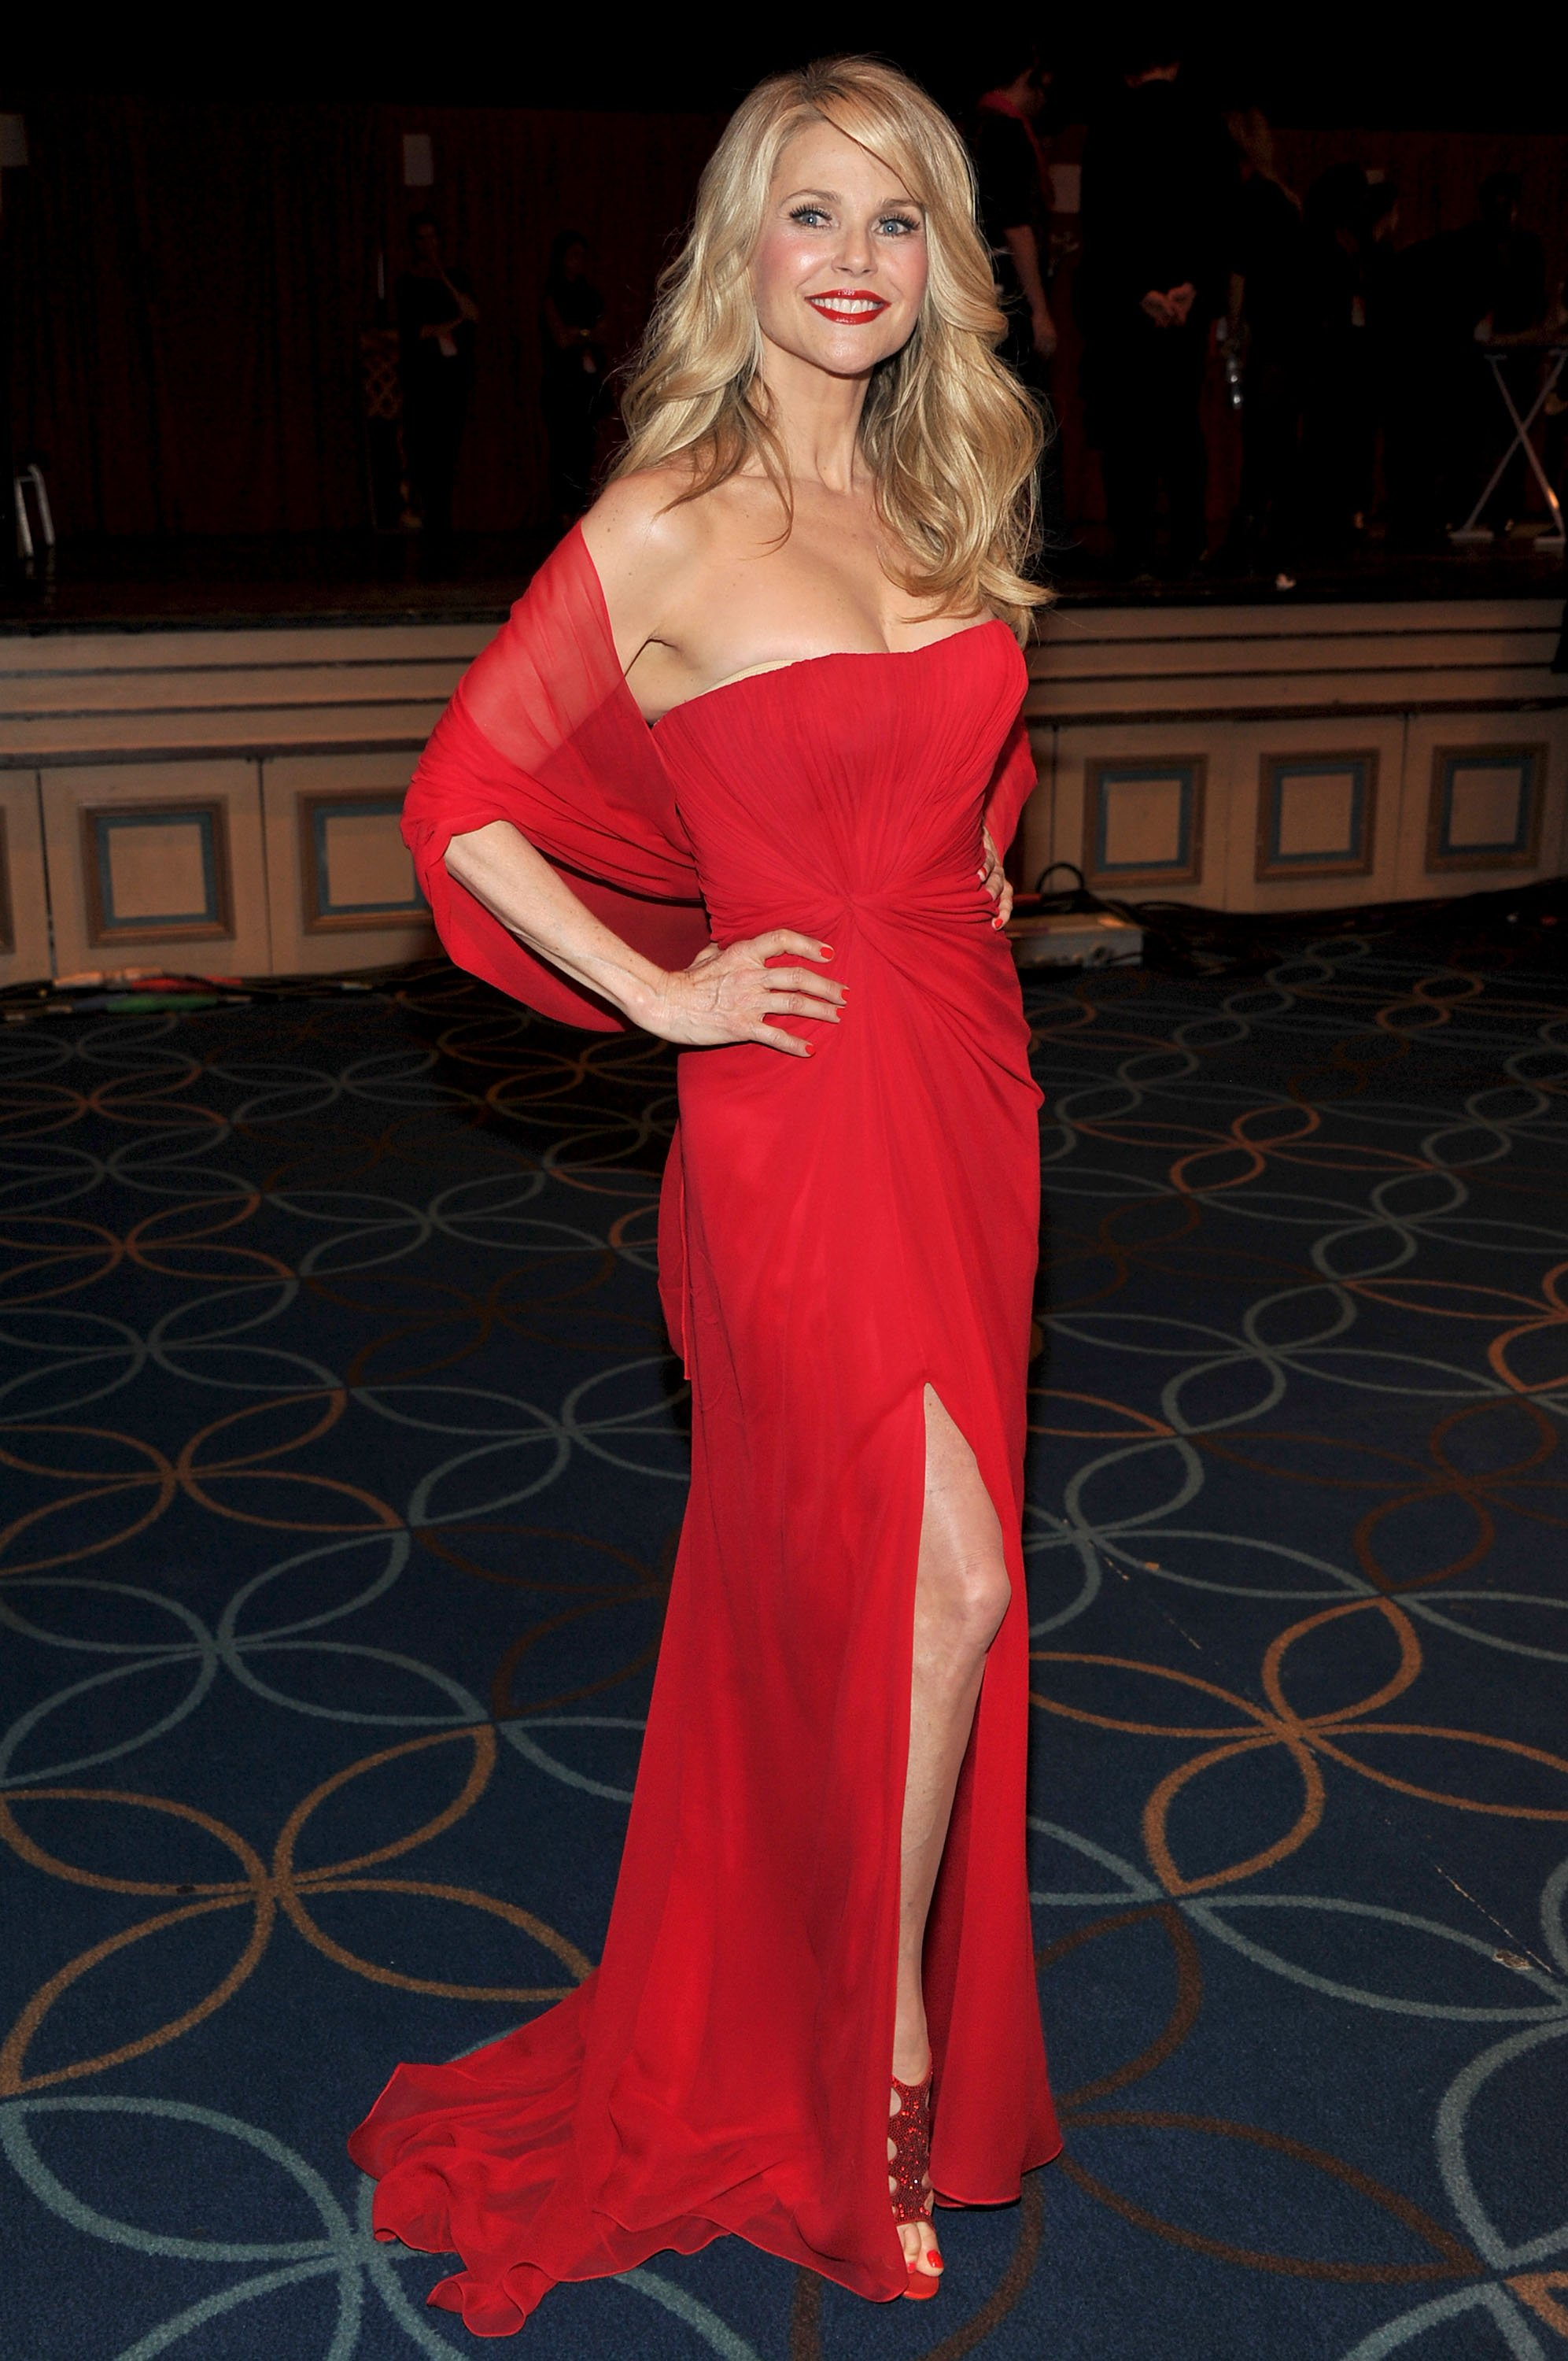 Christie Brinkley attending The Heart Truth's Red Dress Collection Fashion Show. Source   Photo: Getty Images